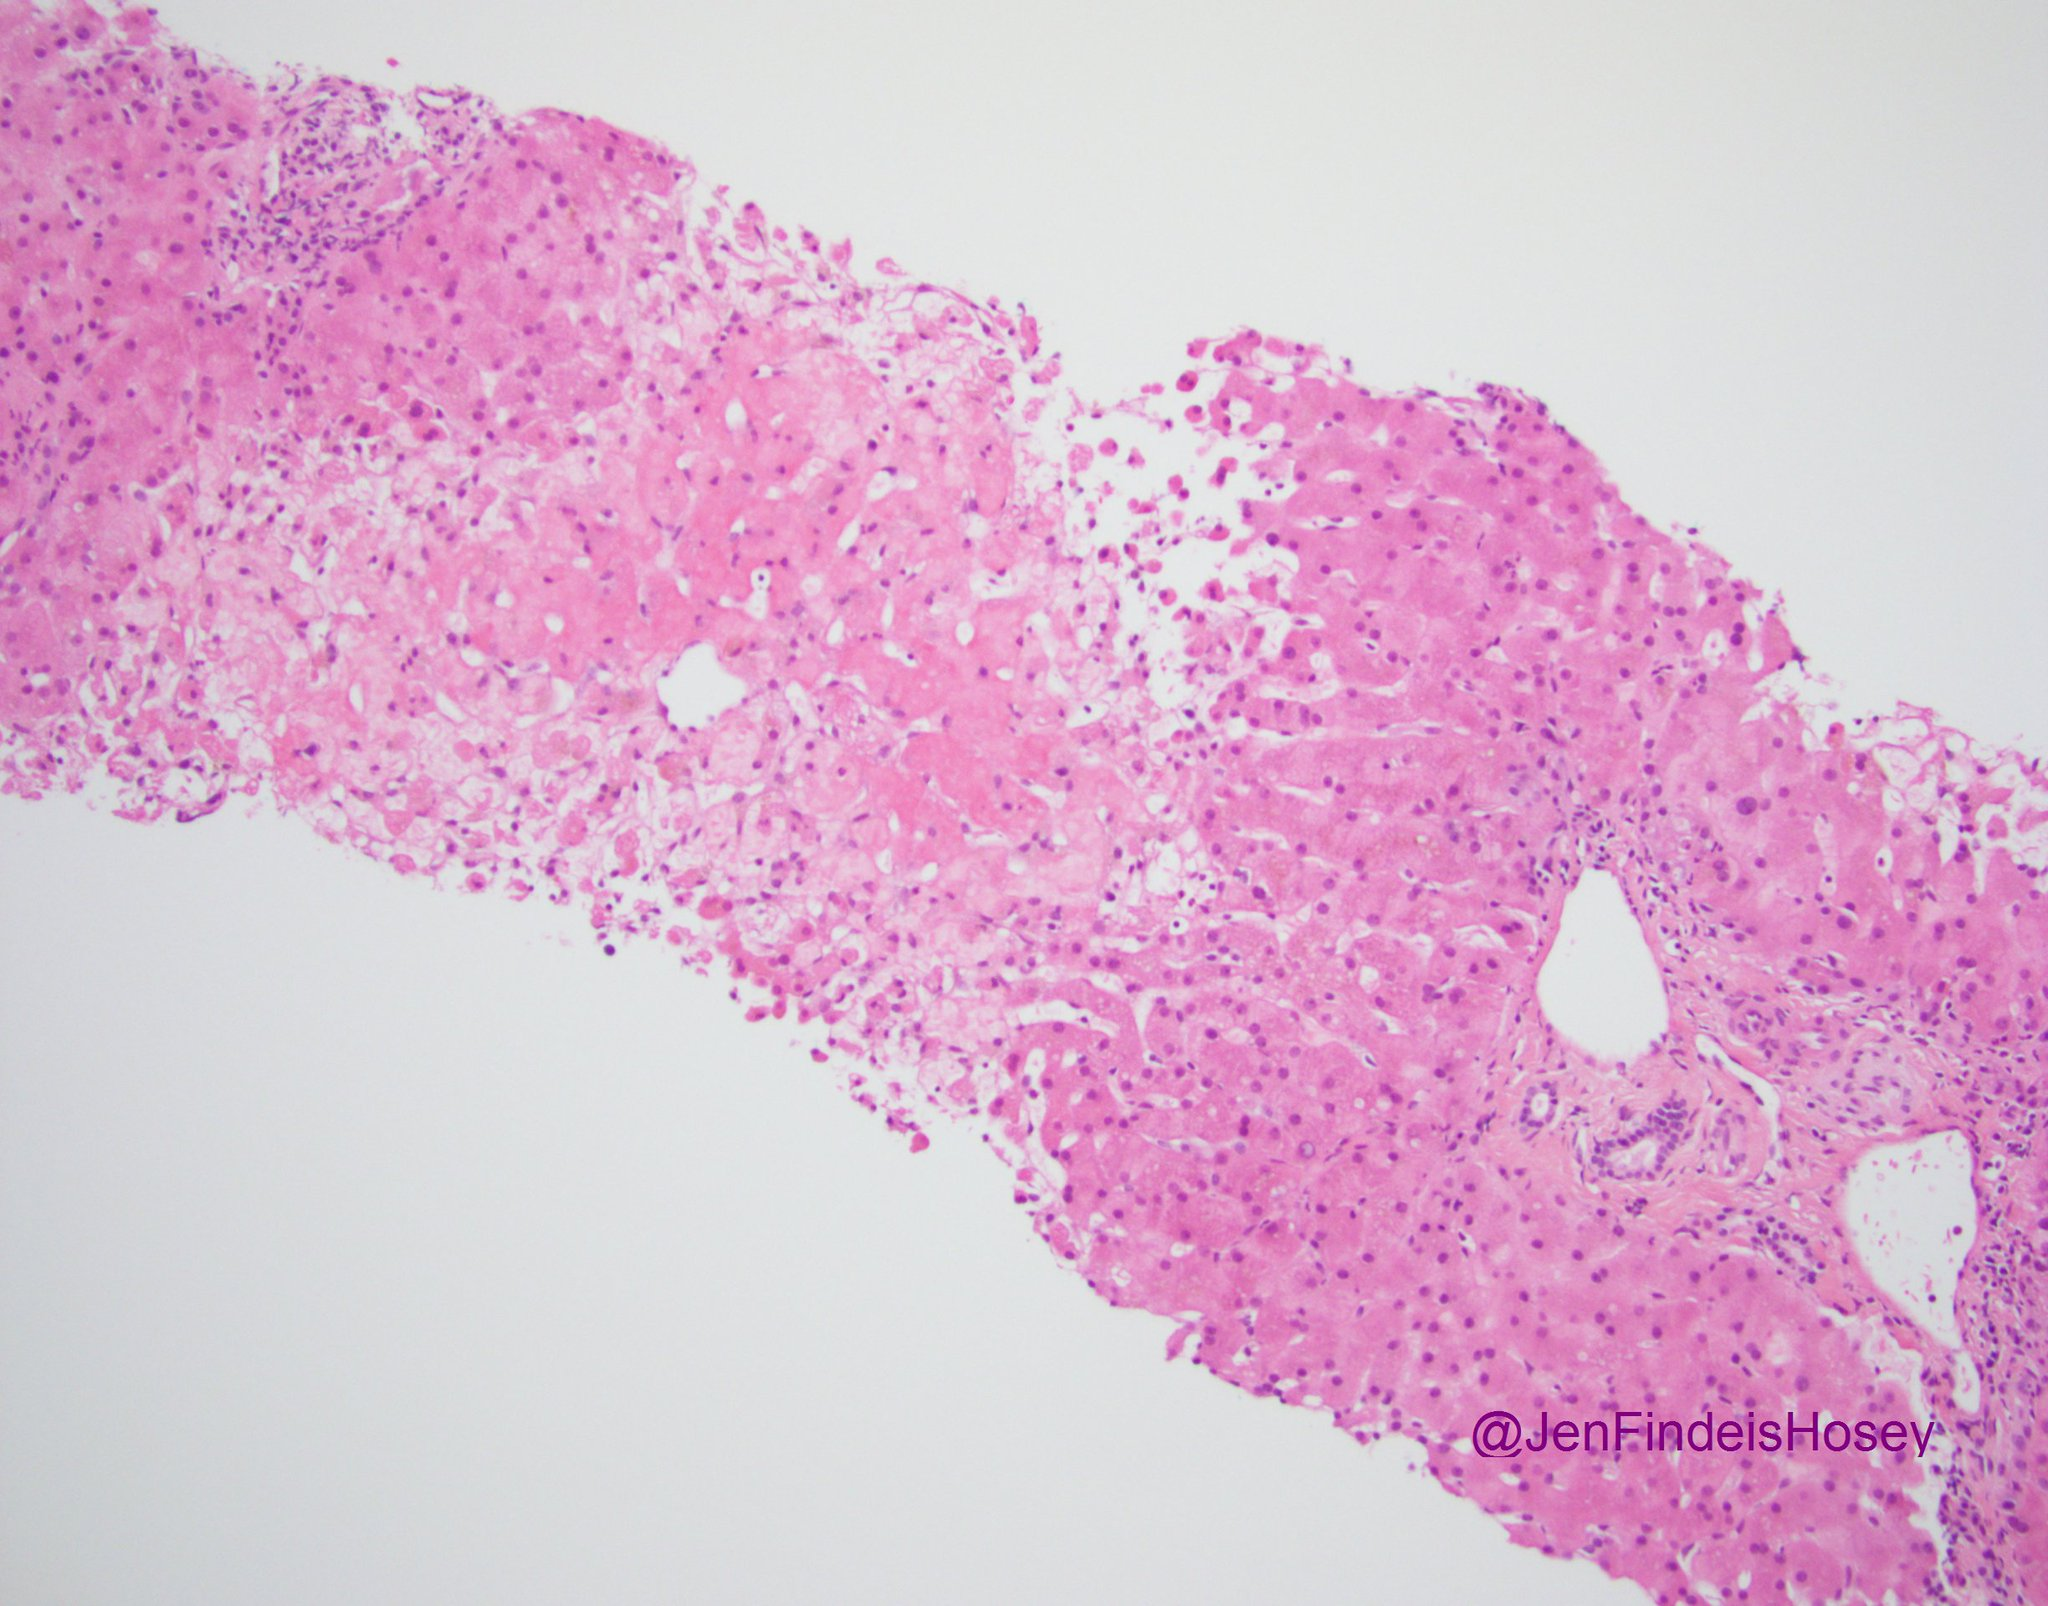 Thankfully not something we see every day. Submassive hepatic necrosis due to acetaminophen.  #GIPath #pathology #pathboards (perivascular zone 3 hepatocyte necrosis!) https://t.co/UuI4aotH68